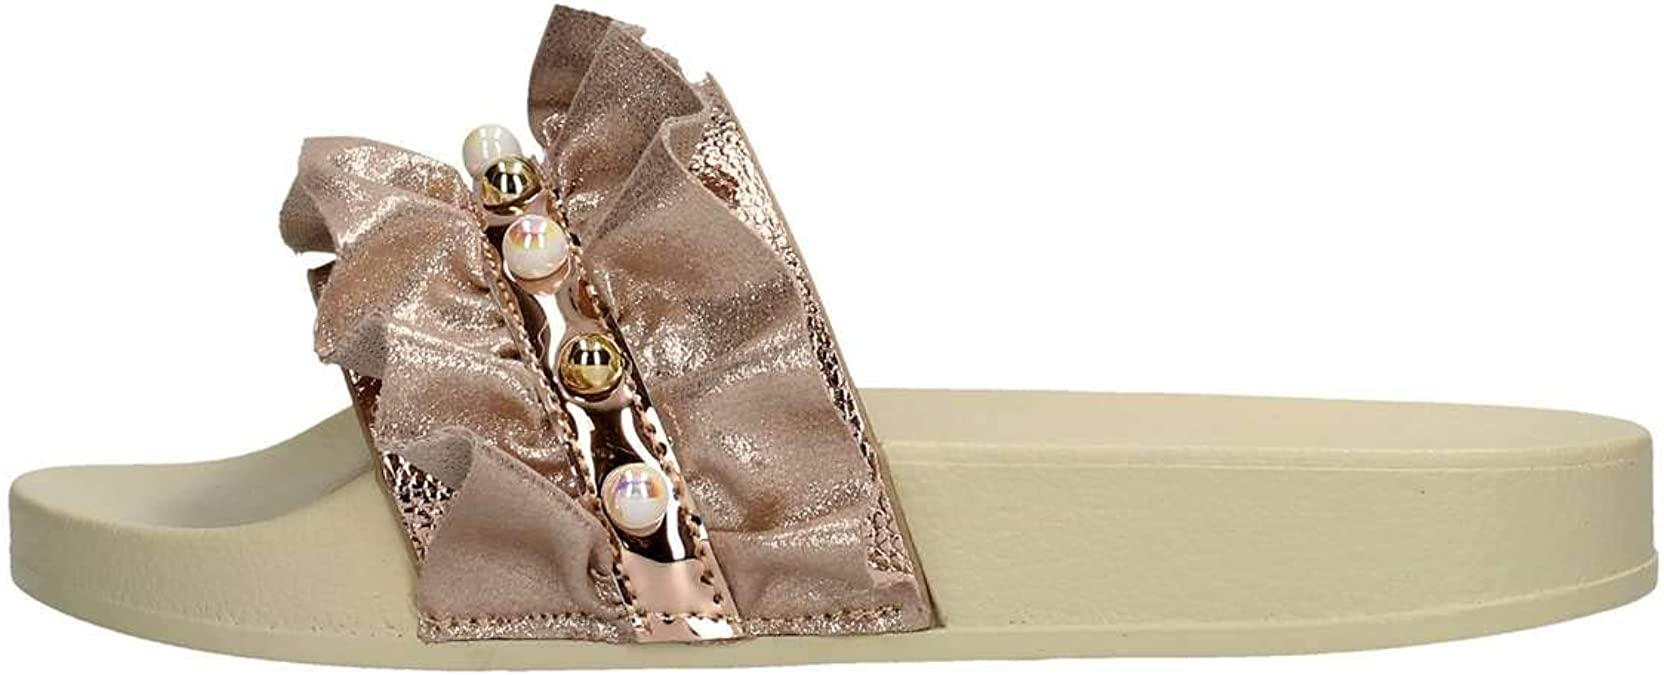 Lelli Kelly Rubber Slippers with Pearls Katia LK9900R Pink